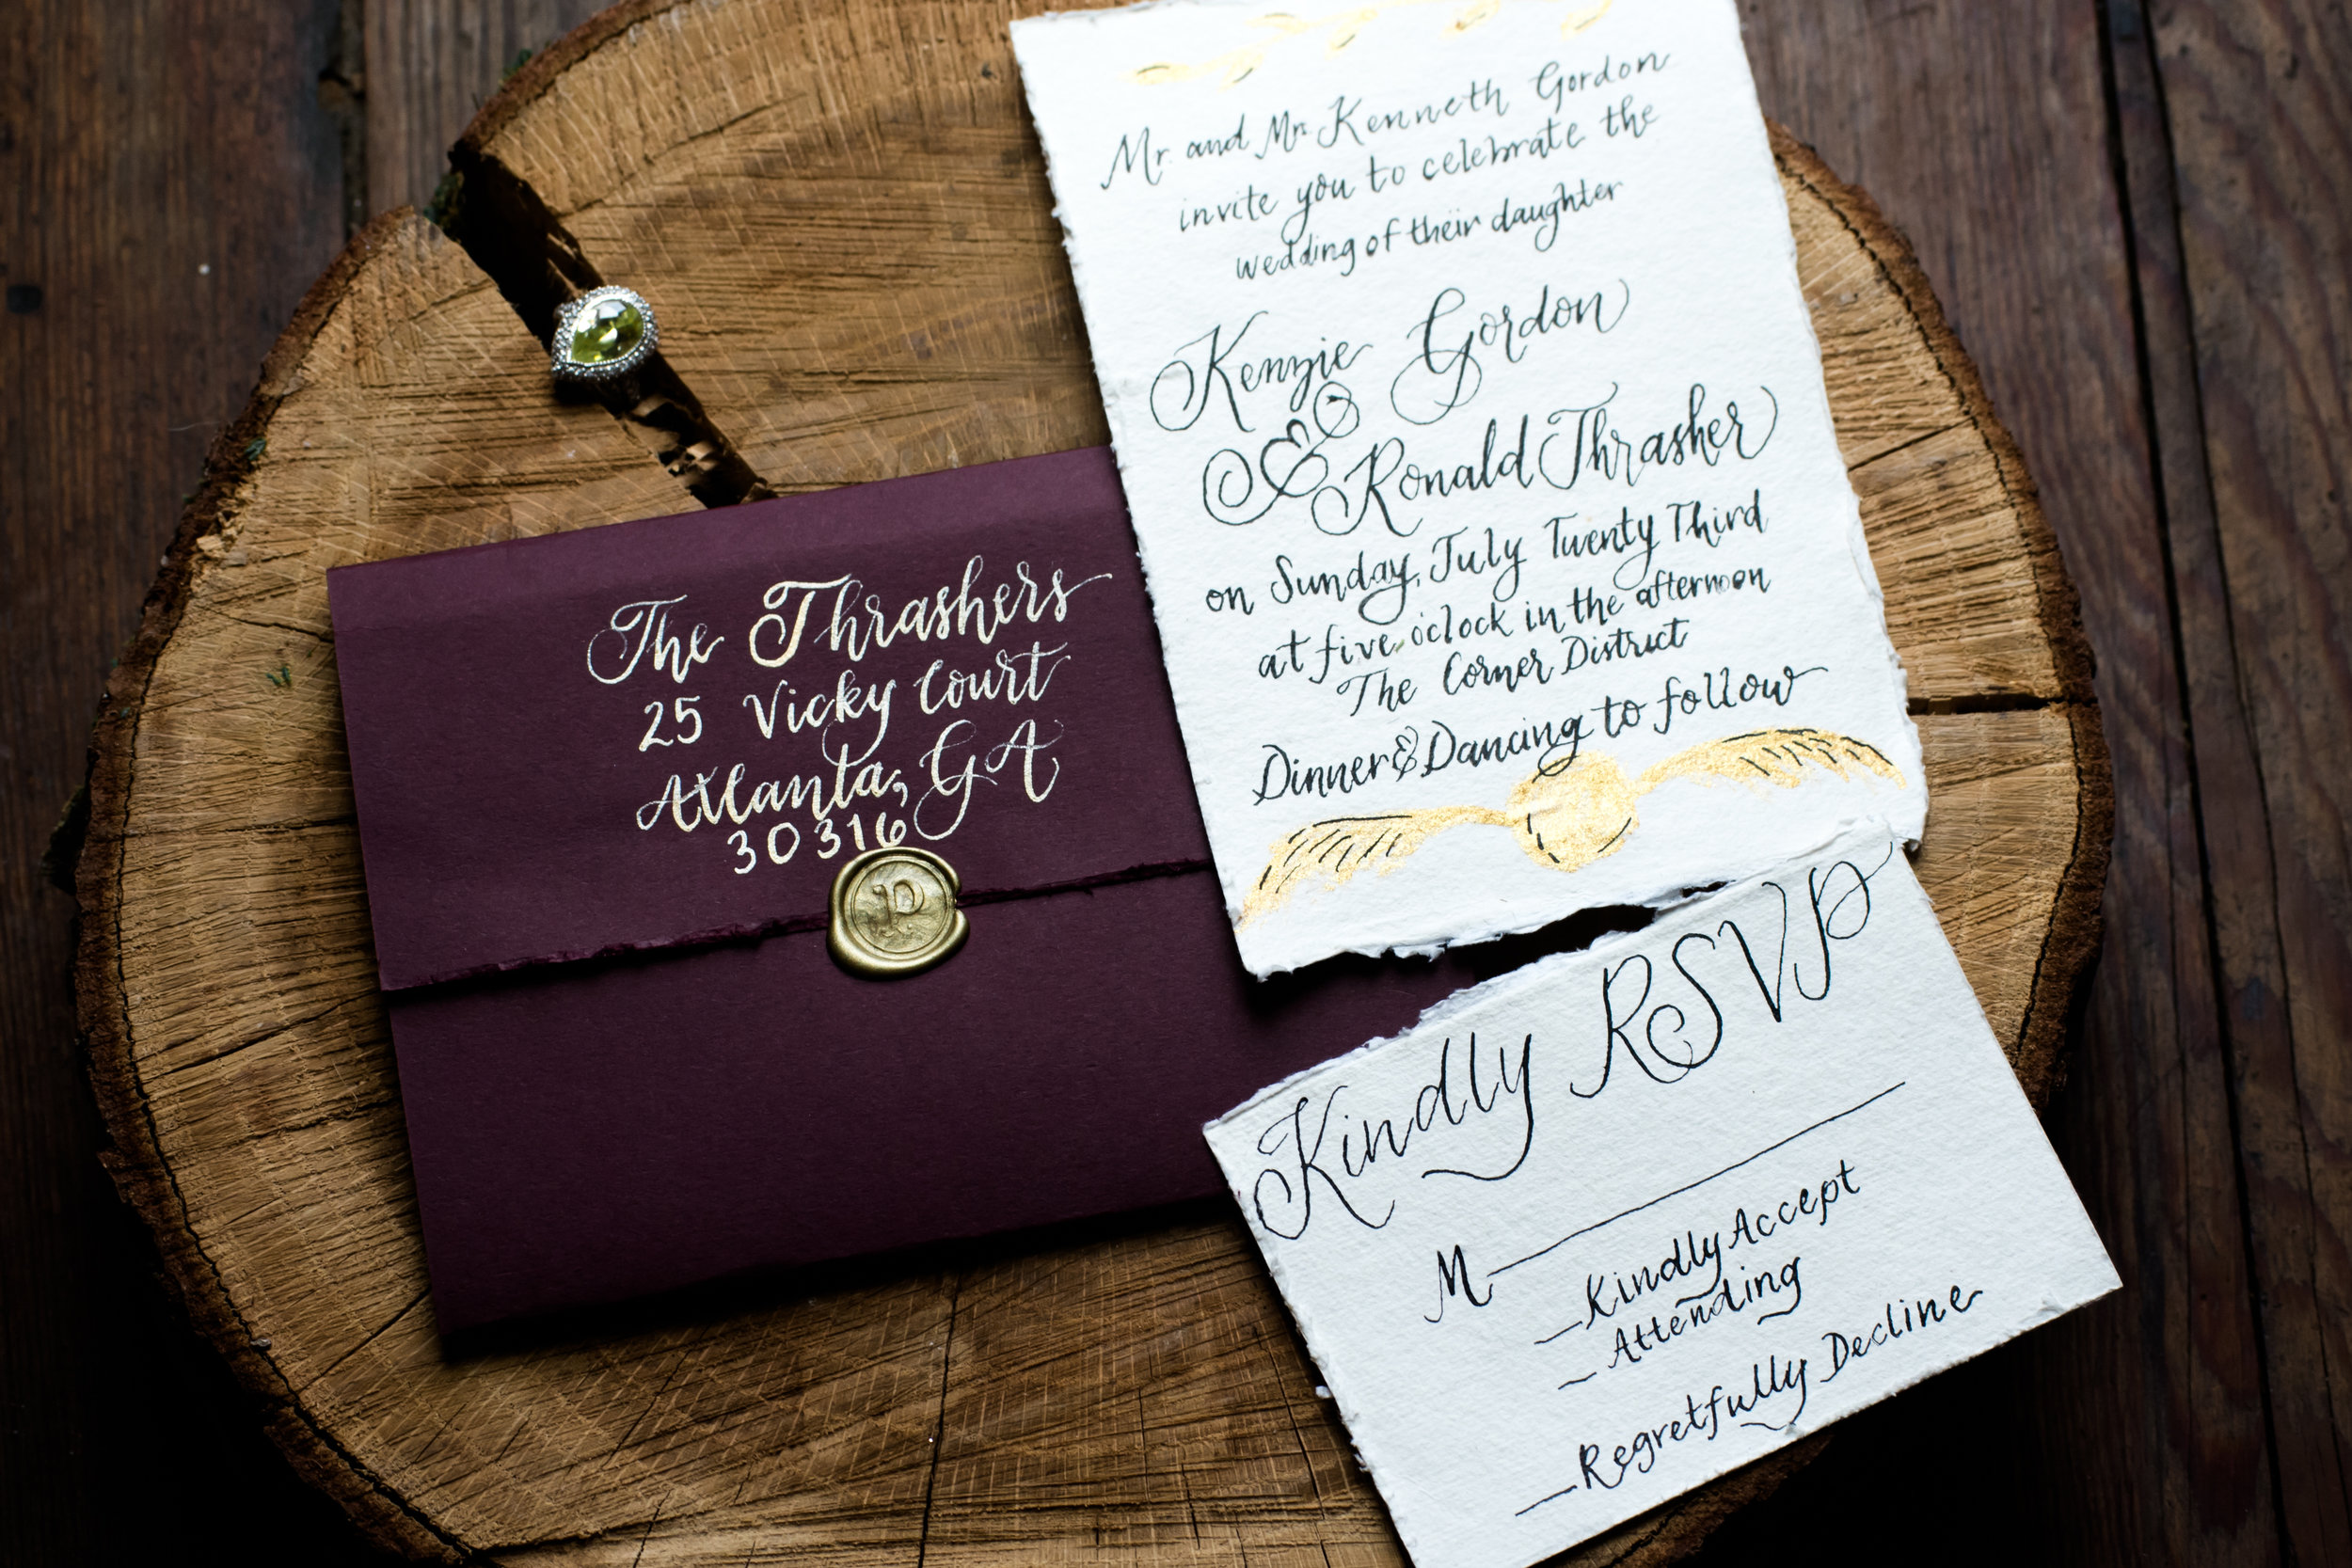 Harry Potter Wedding Ideas